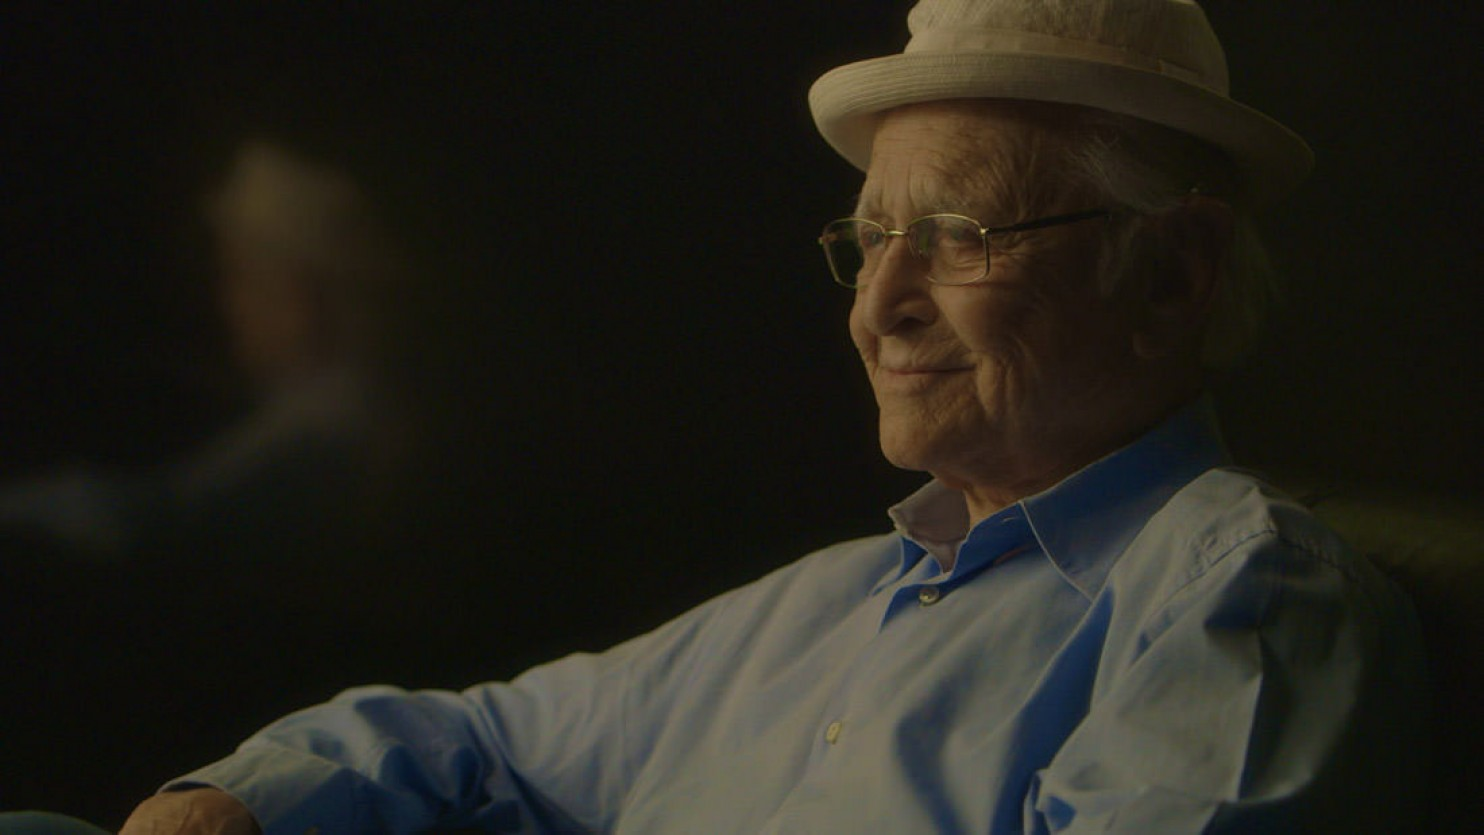 WASHINGTON POST - 'Norman Lear: Just Another Version of You': Homage to a visionary TV producer